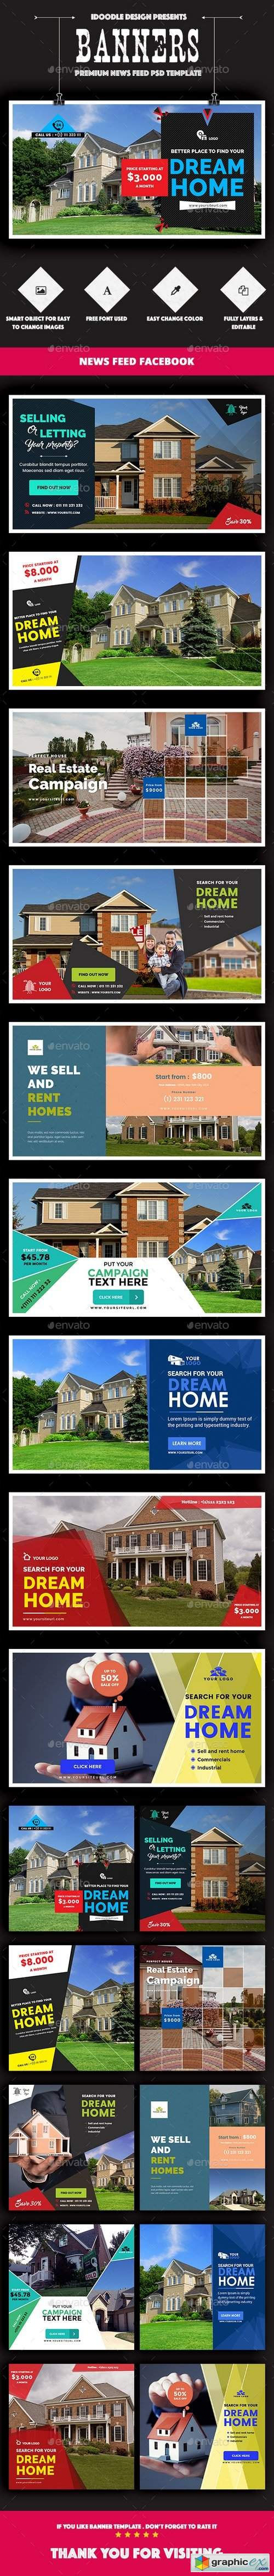 Facebook Real Estate Banners Ads - 20 PSD [2 Size Each]